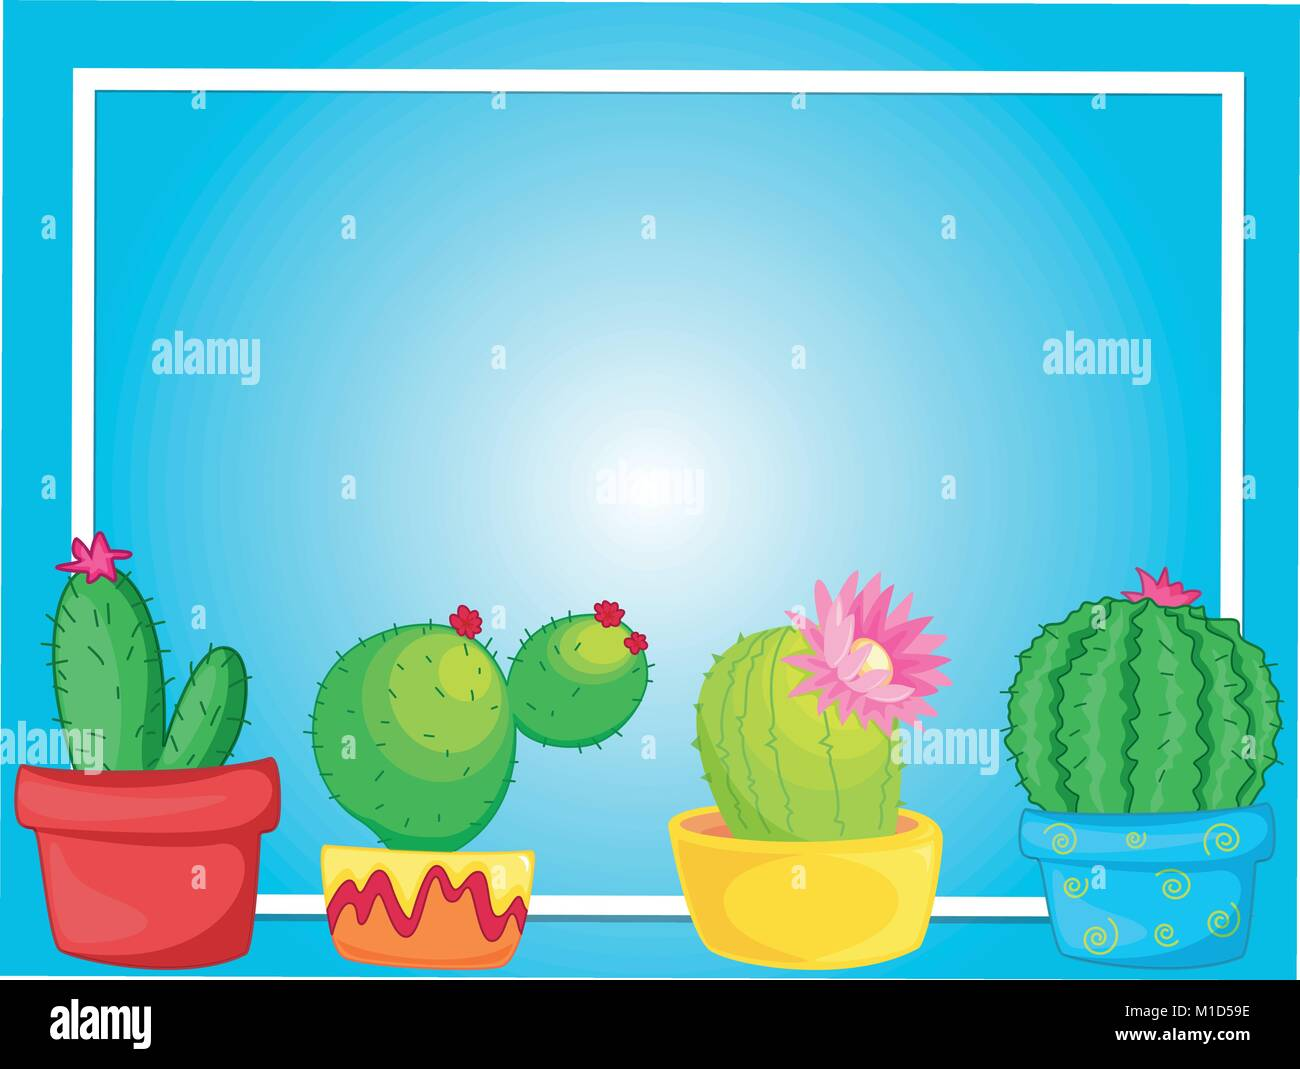 Border Template With Cactus In Pots Illustration